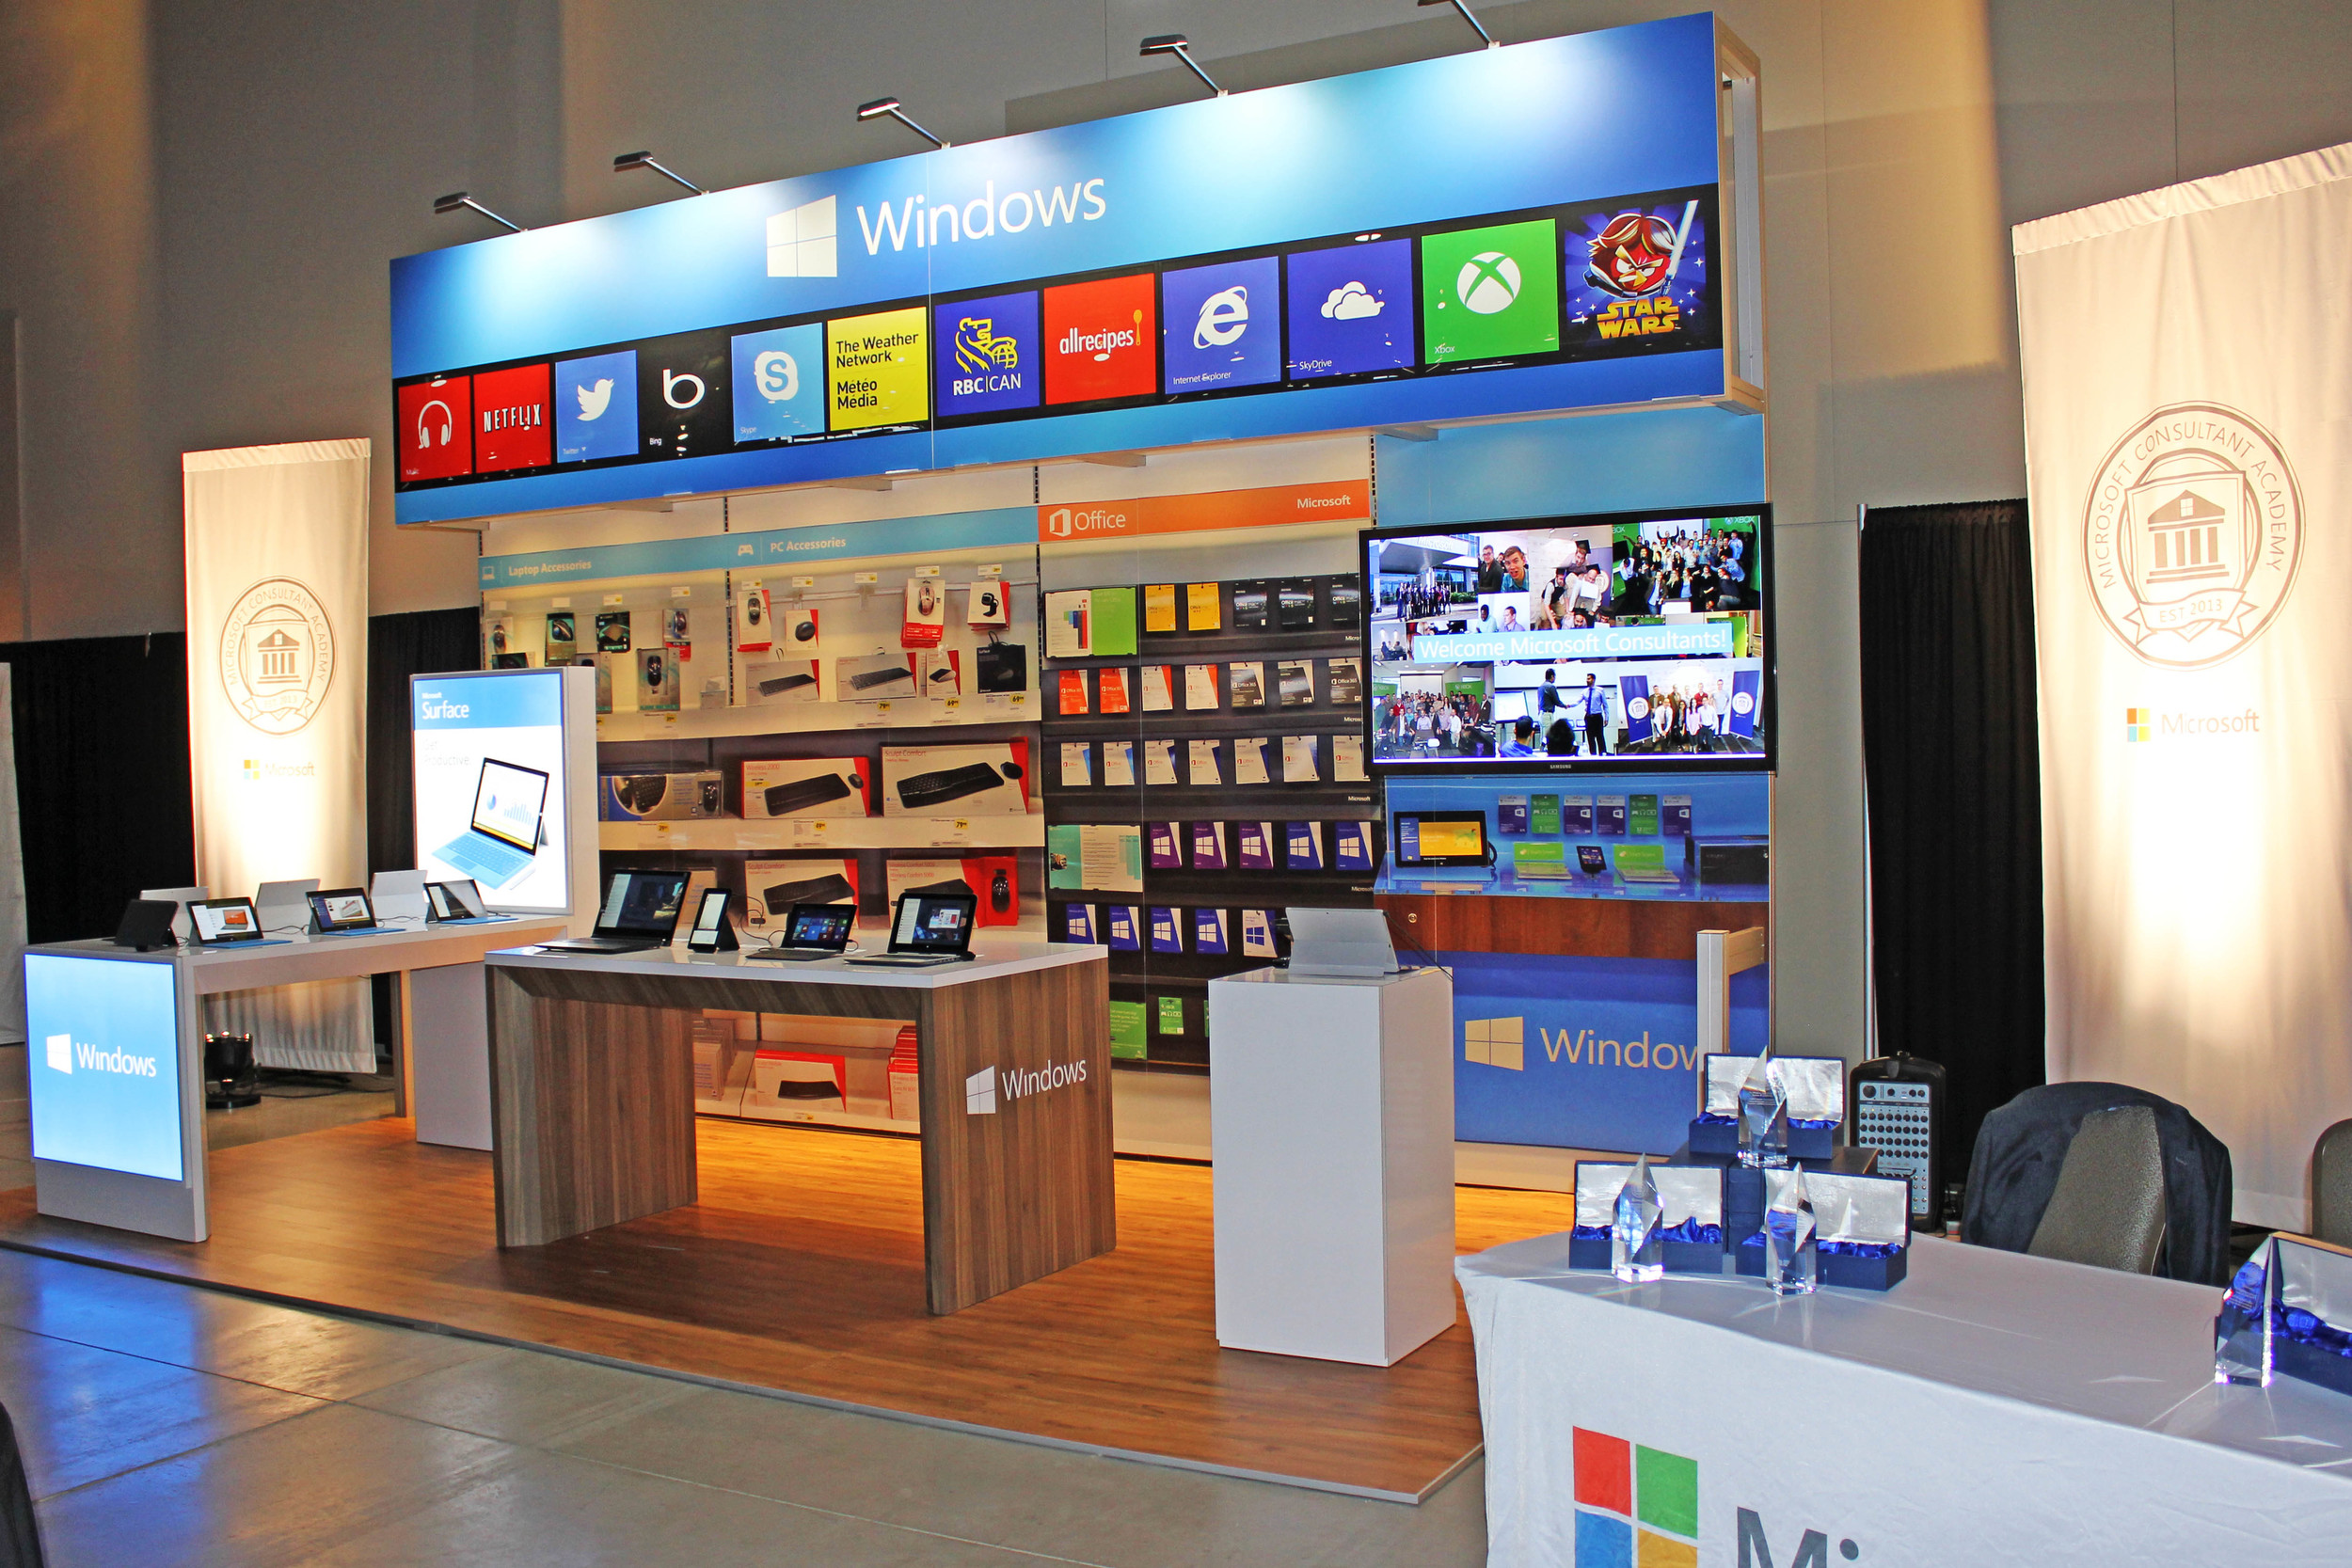 We recreated the Windows Store as a trade show booth rental at a private event for Microsoft